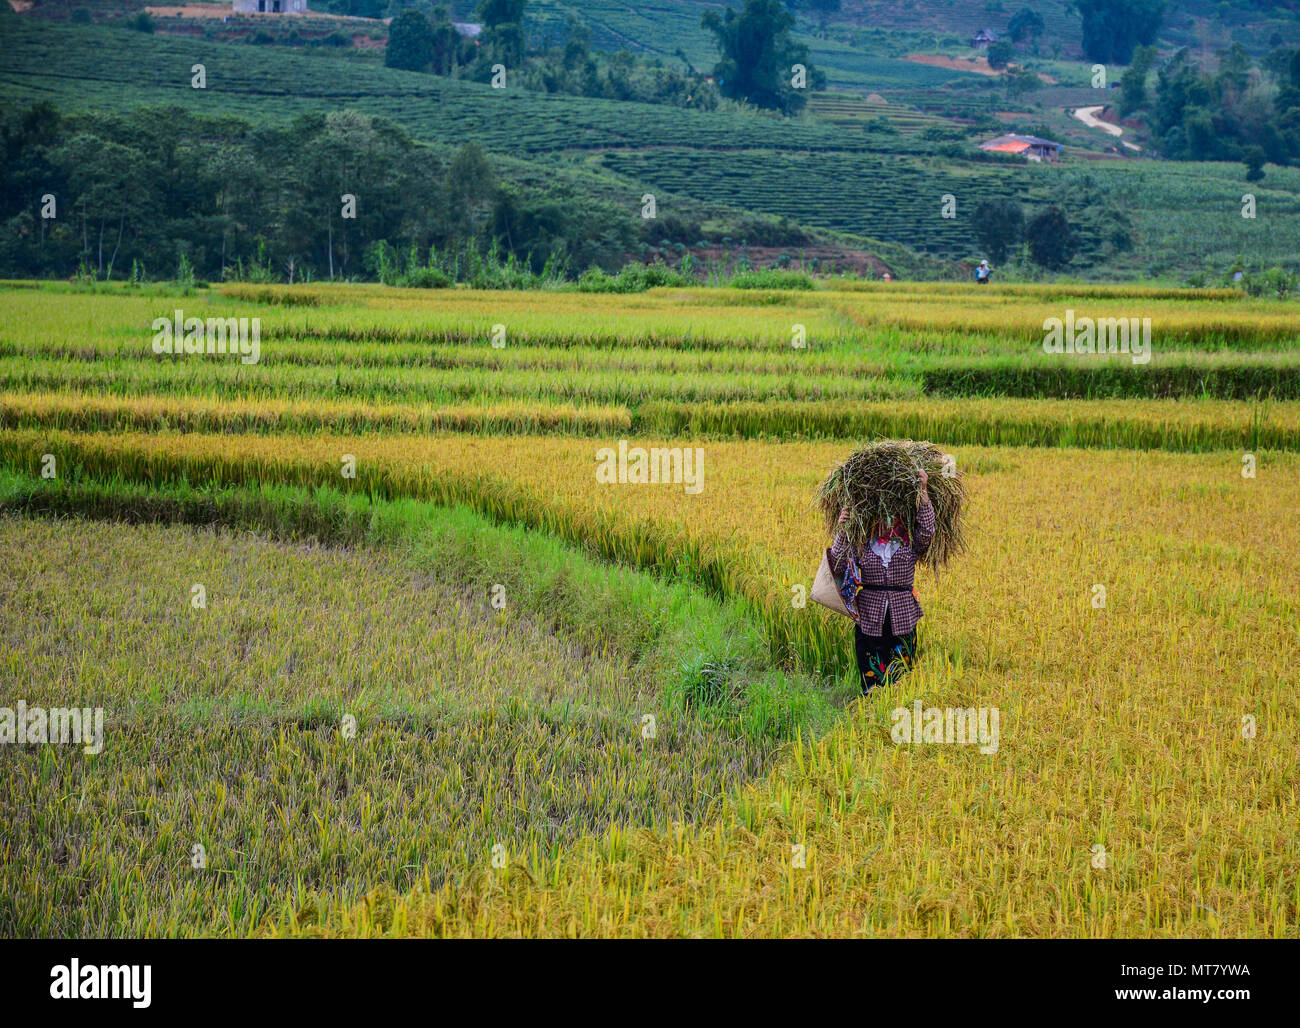 A woman havesting rice on the field at summer in Northern Vietnam. - Stock Image